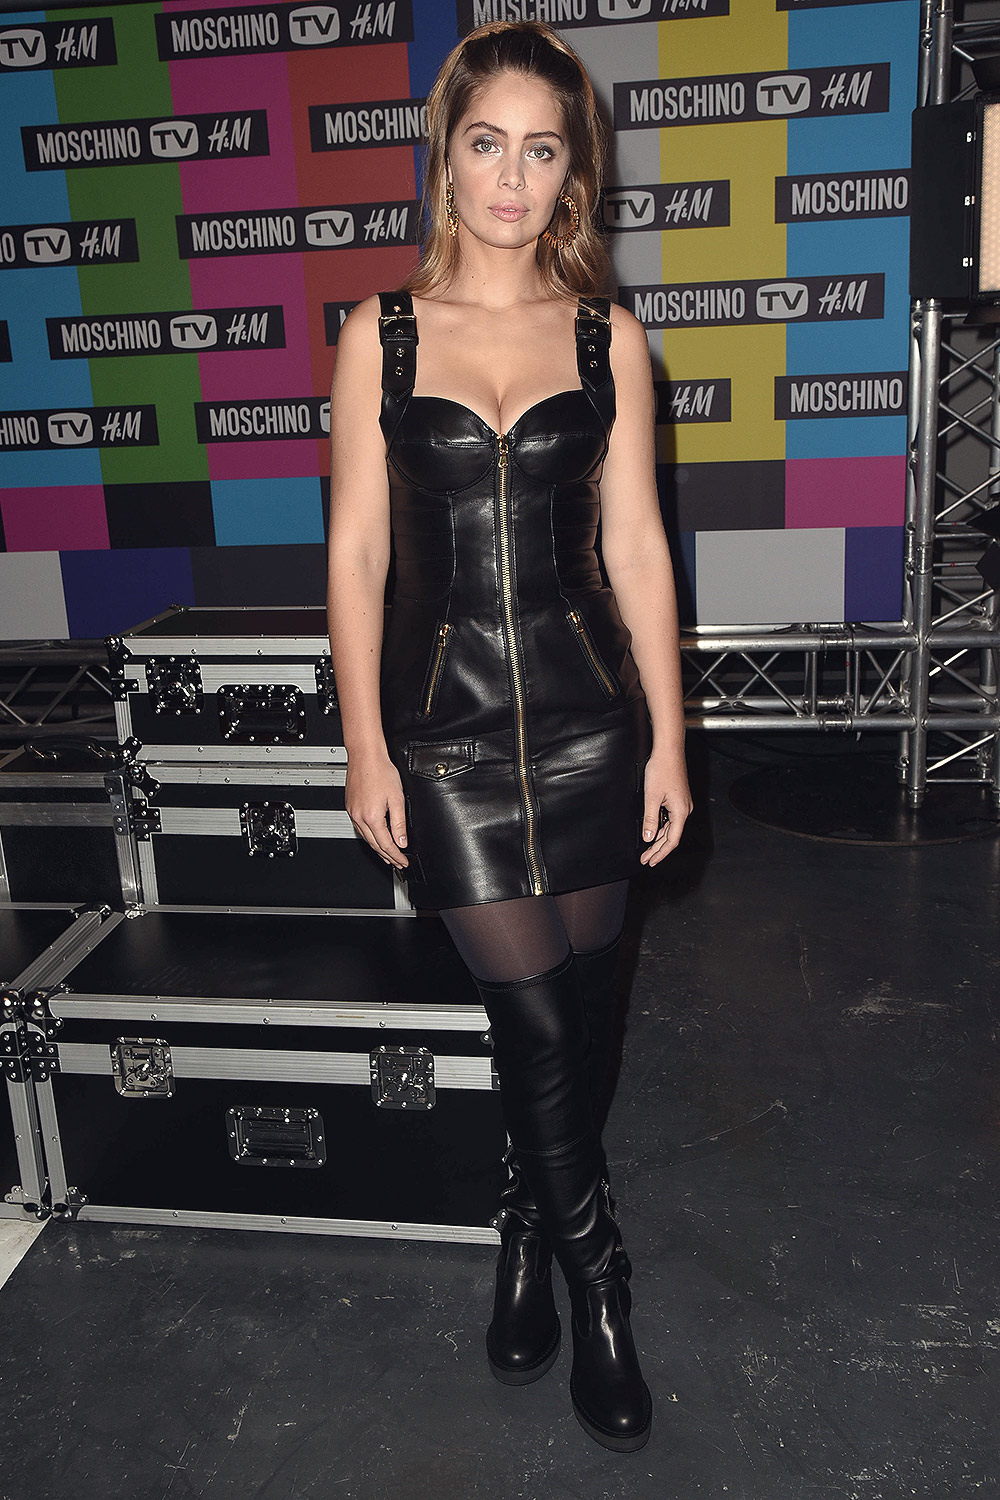 Marie Ange Casta attends MOSCHINO [tv] H&M Launch Party